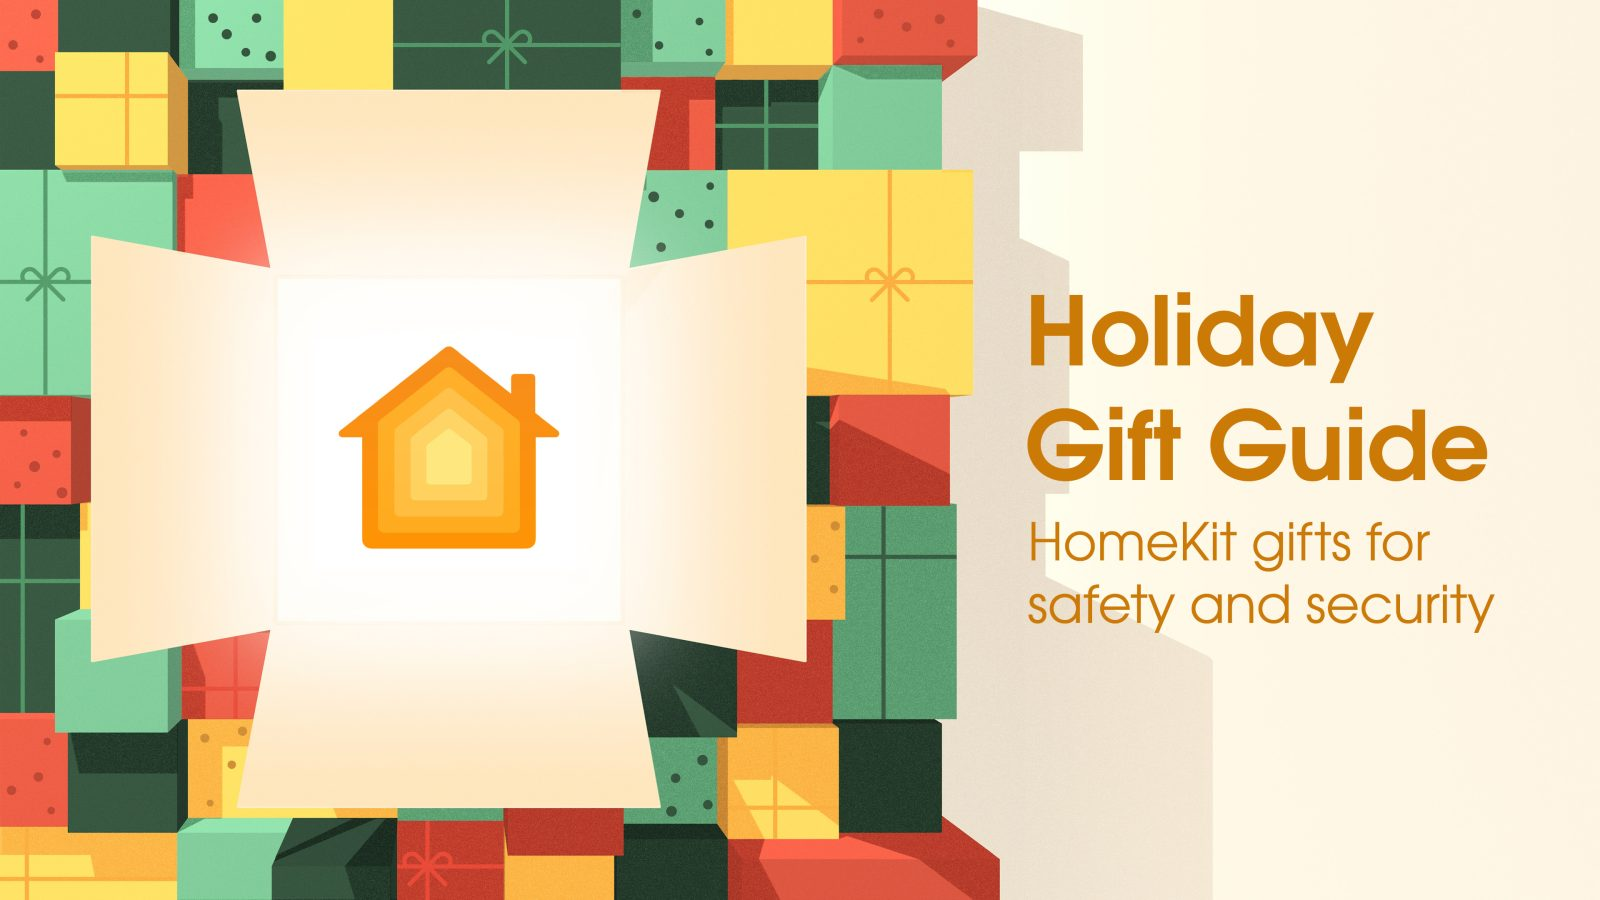 9to5Mac Gift Guide: The best HomeKit gifts in 2020 for safety and security